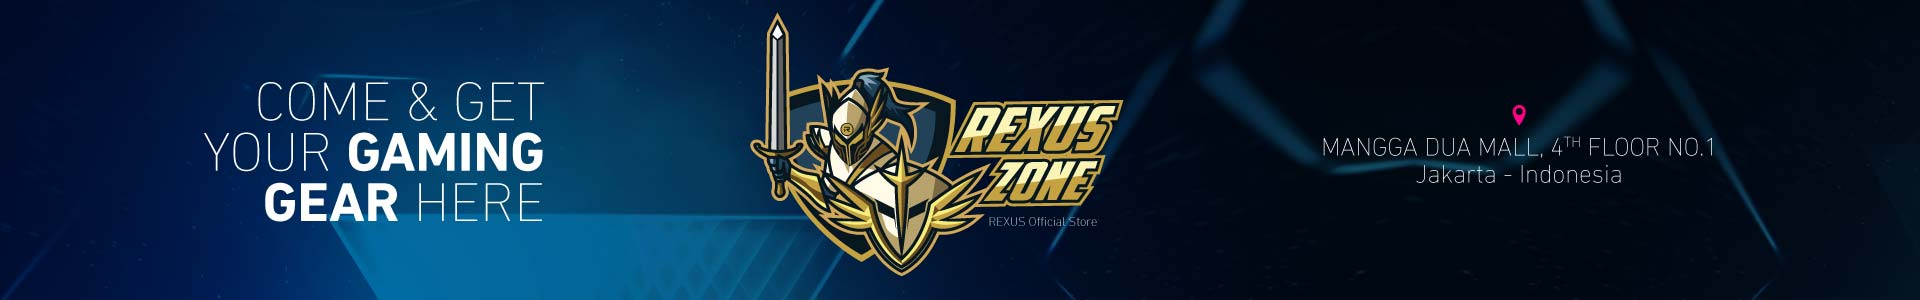 Rexus Indonesia | Made For Everyone Banner Web 2020 RexZone 1